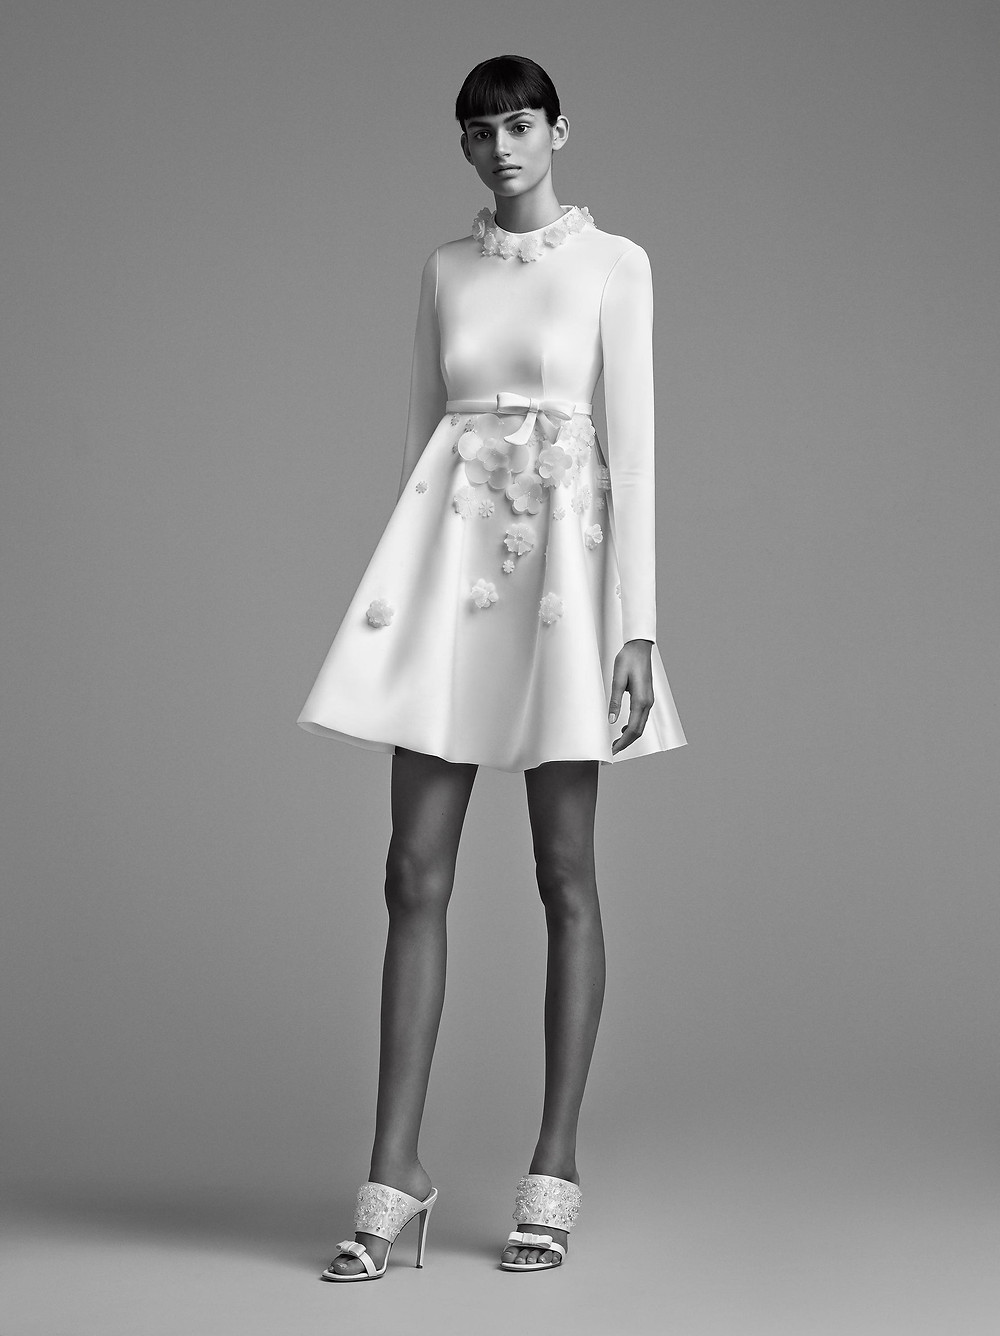 A Viktor & Rolf short crepe wedding dress with long sleeves